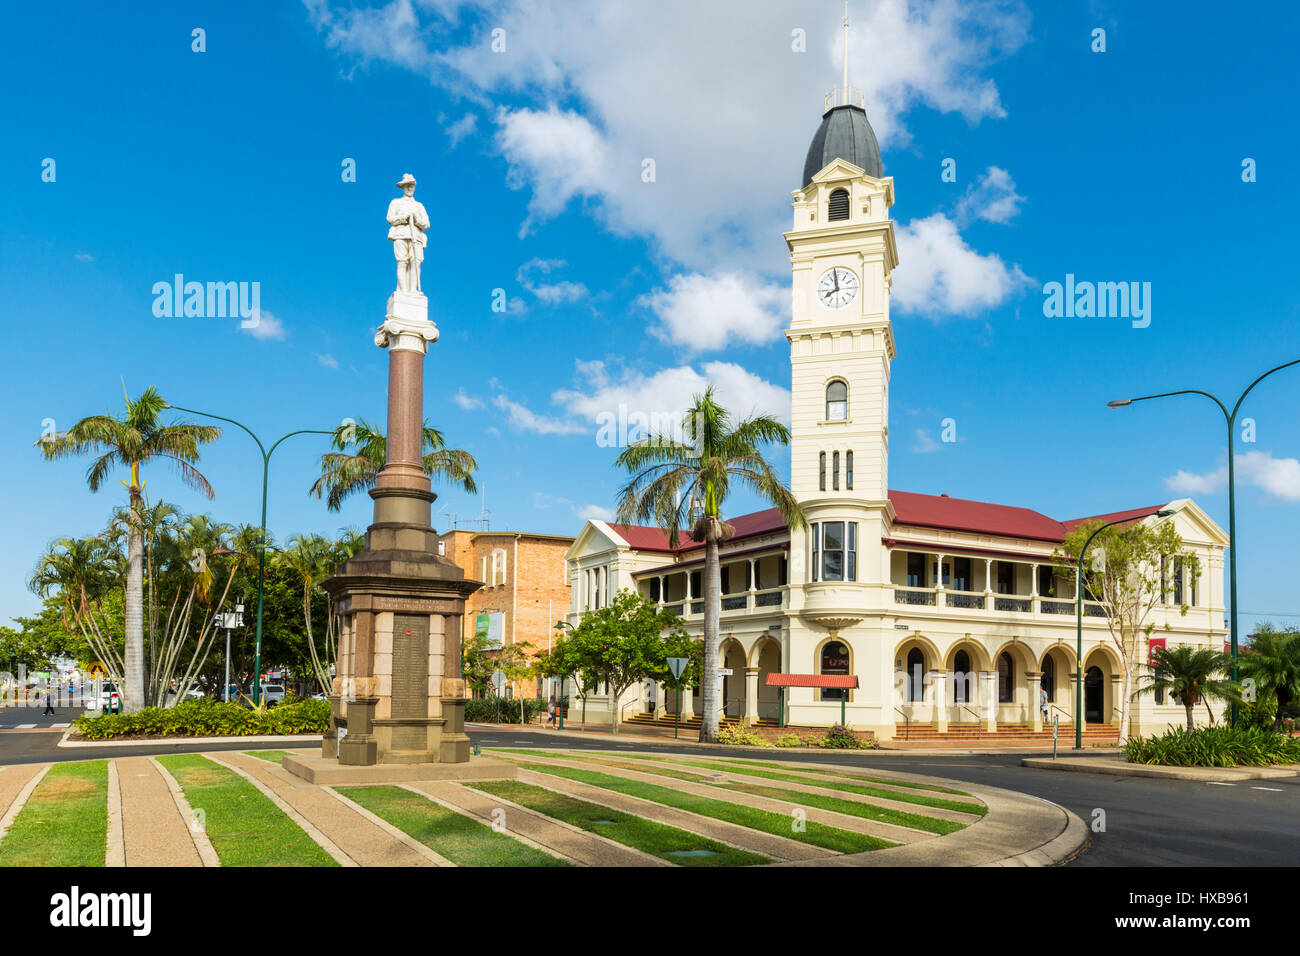 The Bundaberg Post Office and clock tower, along with the Cenotaph War Memorial in the city centre.  Bundaberg, Stock Photo